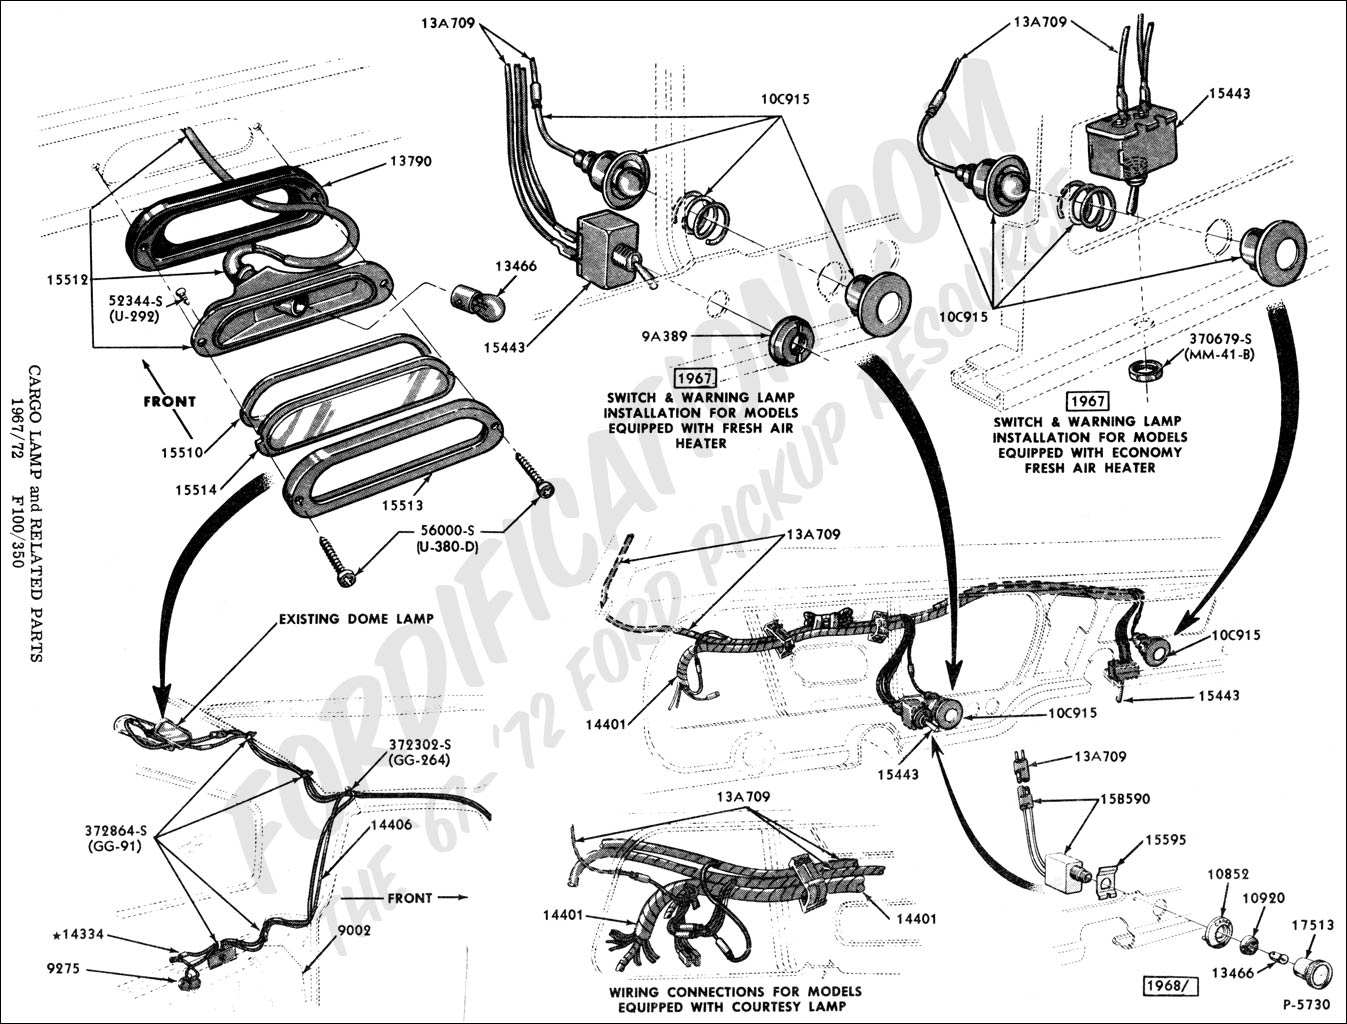 ford truck technical drawings and schematics section i rh fordification com 1971 ford f100 wiring diagram 2007 Ford F-250 Wiring Diagram